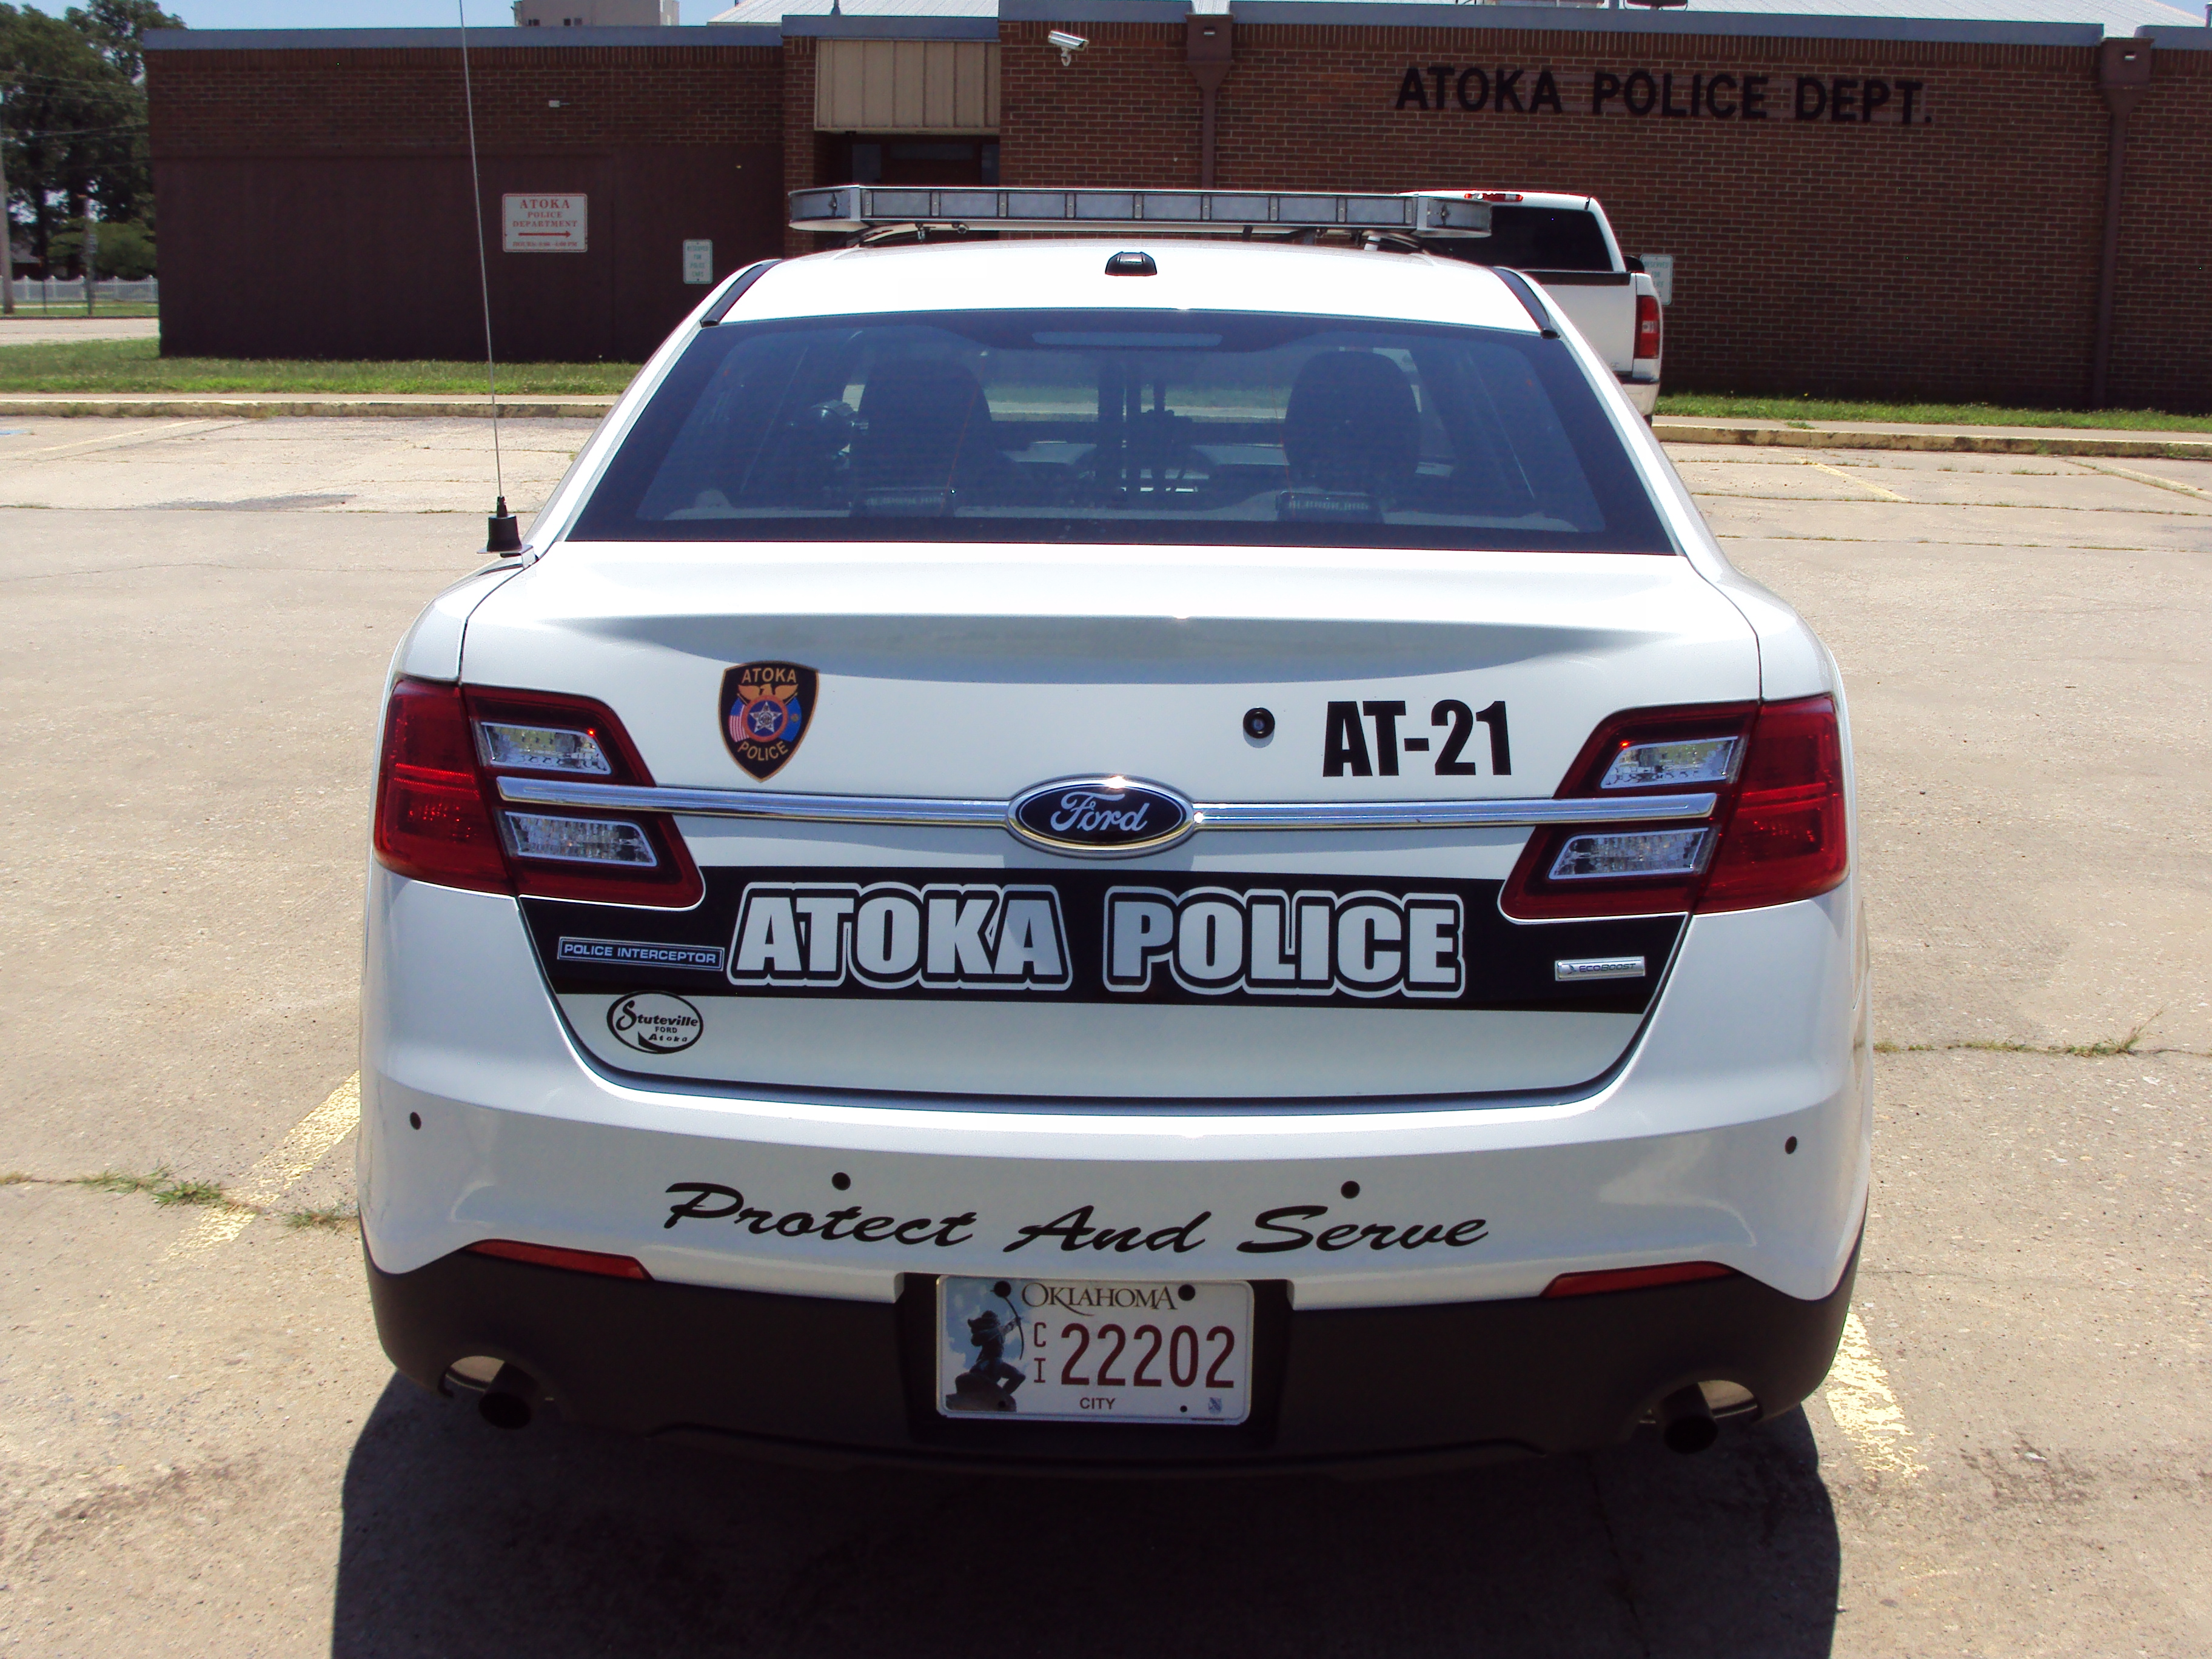 Police Car back view